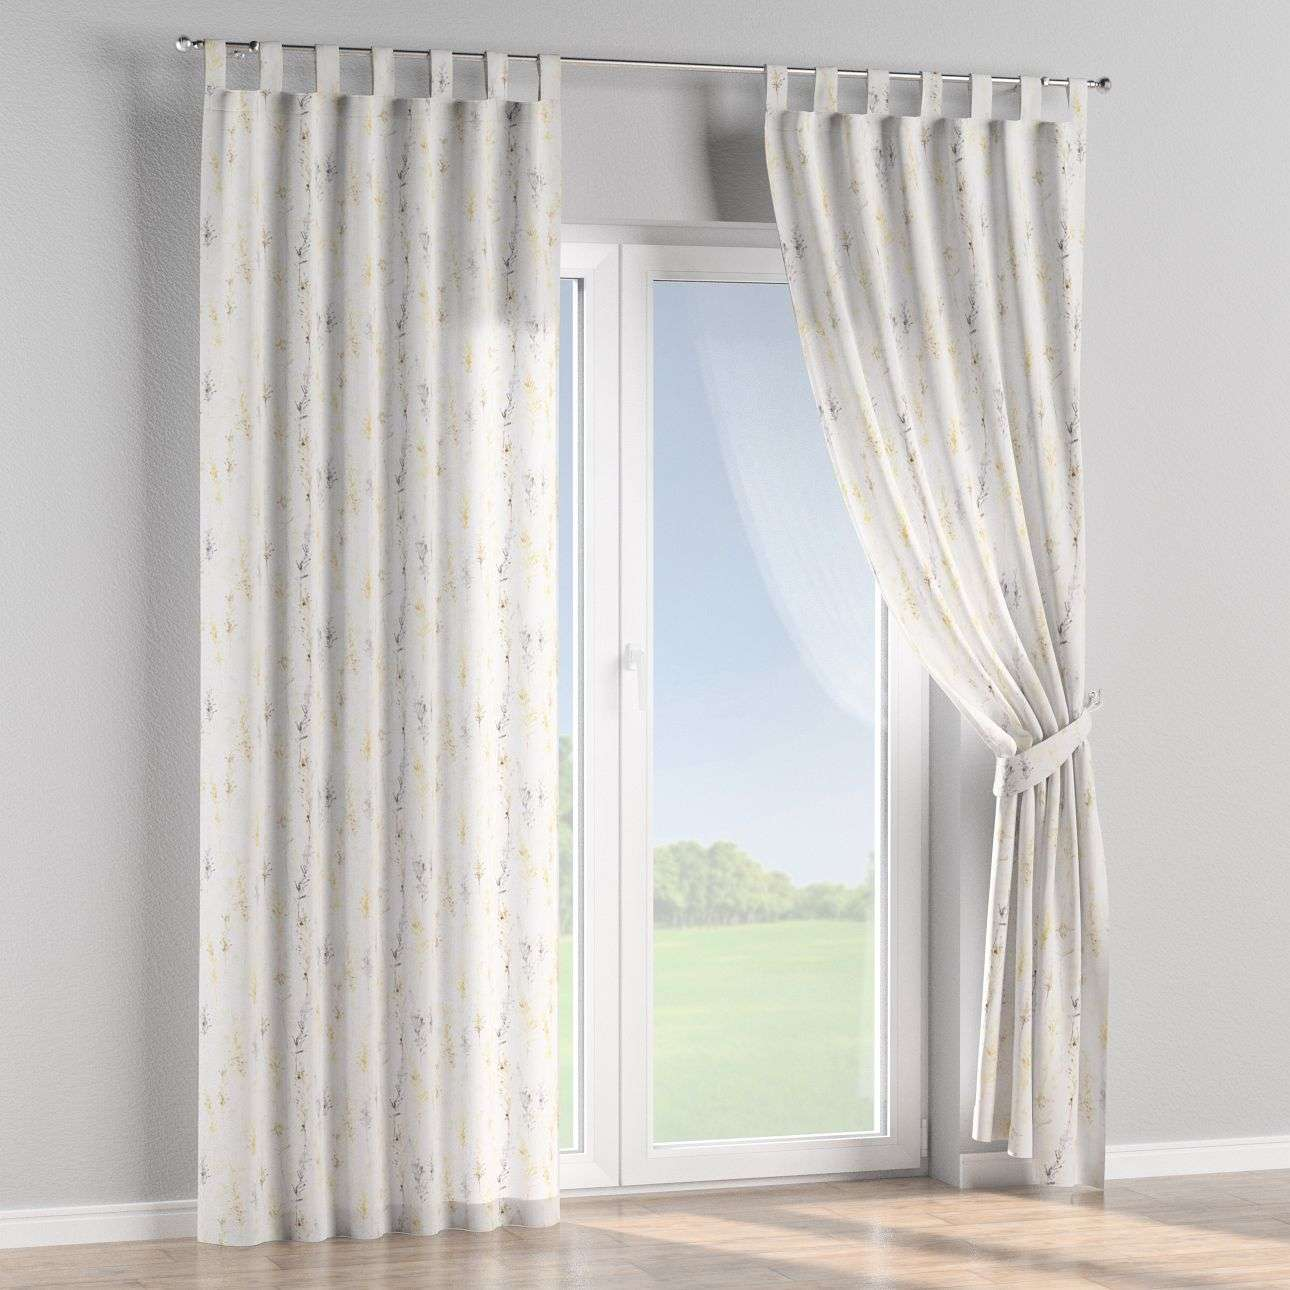 Tab top curtains 130 x 260 cm (51 x 102 inch) in collection Acapulco, fabric: 141-36